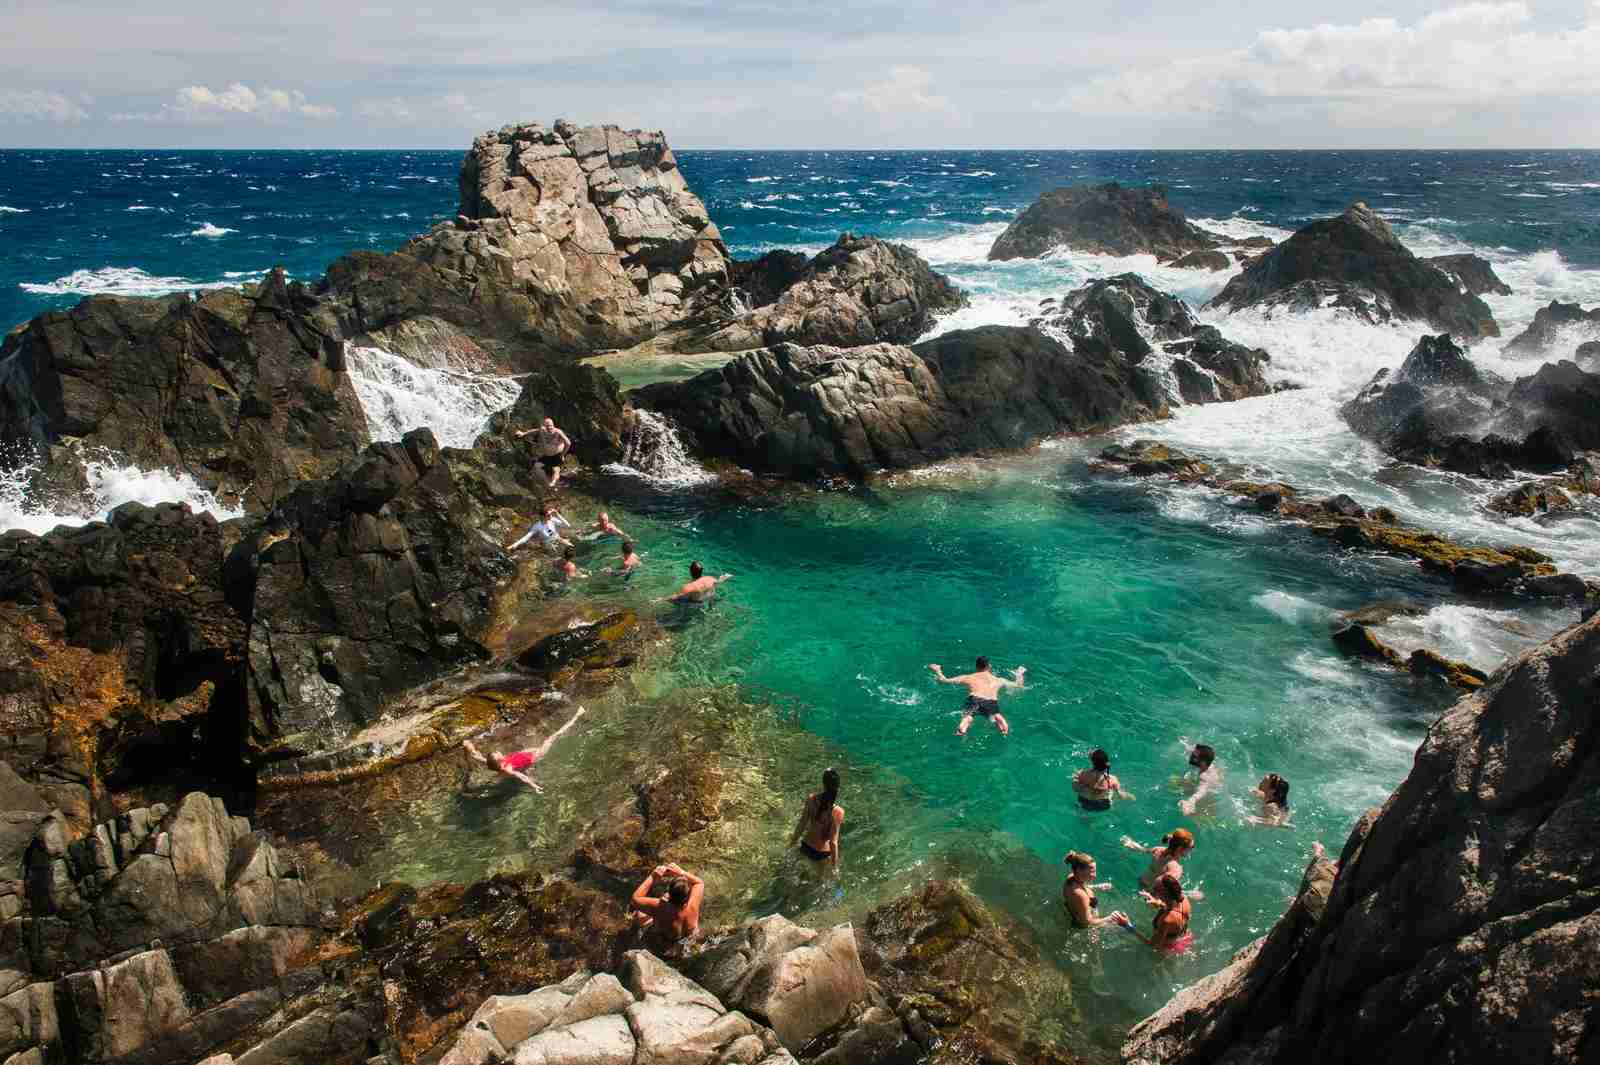 A natural pool in Arikok National park on the North coast of Aruba. (Photo by Marc Guitard / Getty Images)